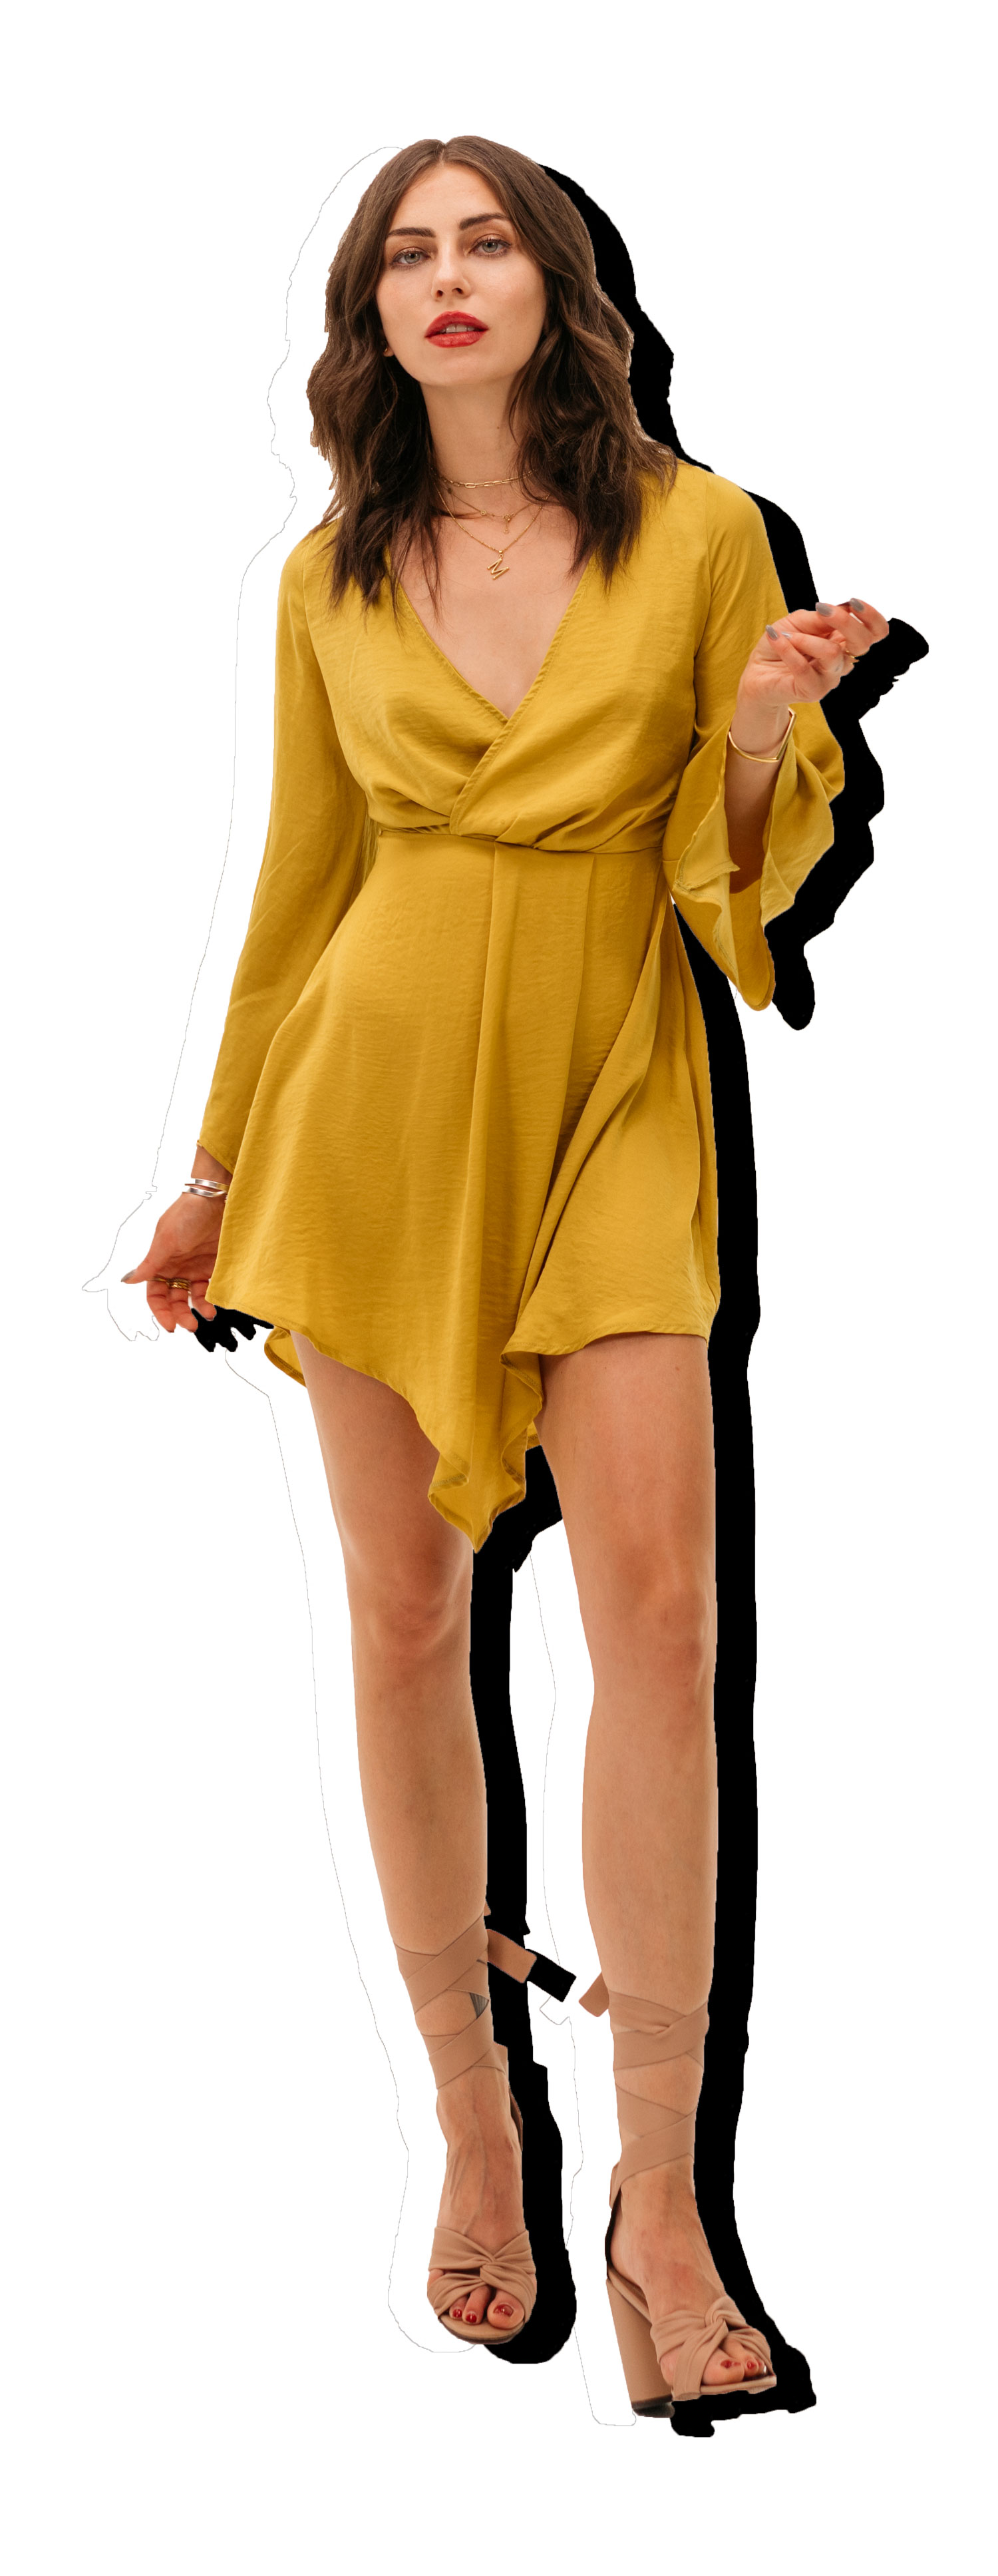 outfit | yellow | street style | business | party | casual | summer | dress | how to wear | all shades of yellow | editorial shooting | fashion | inspiration